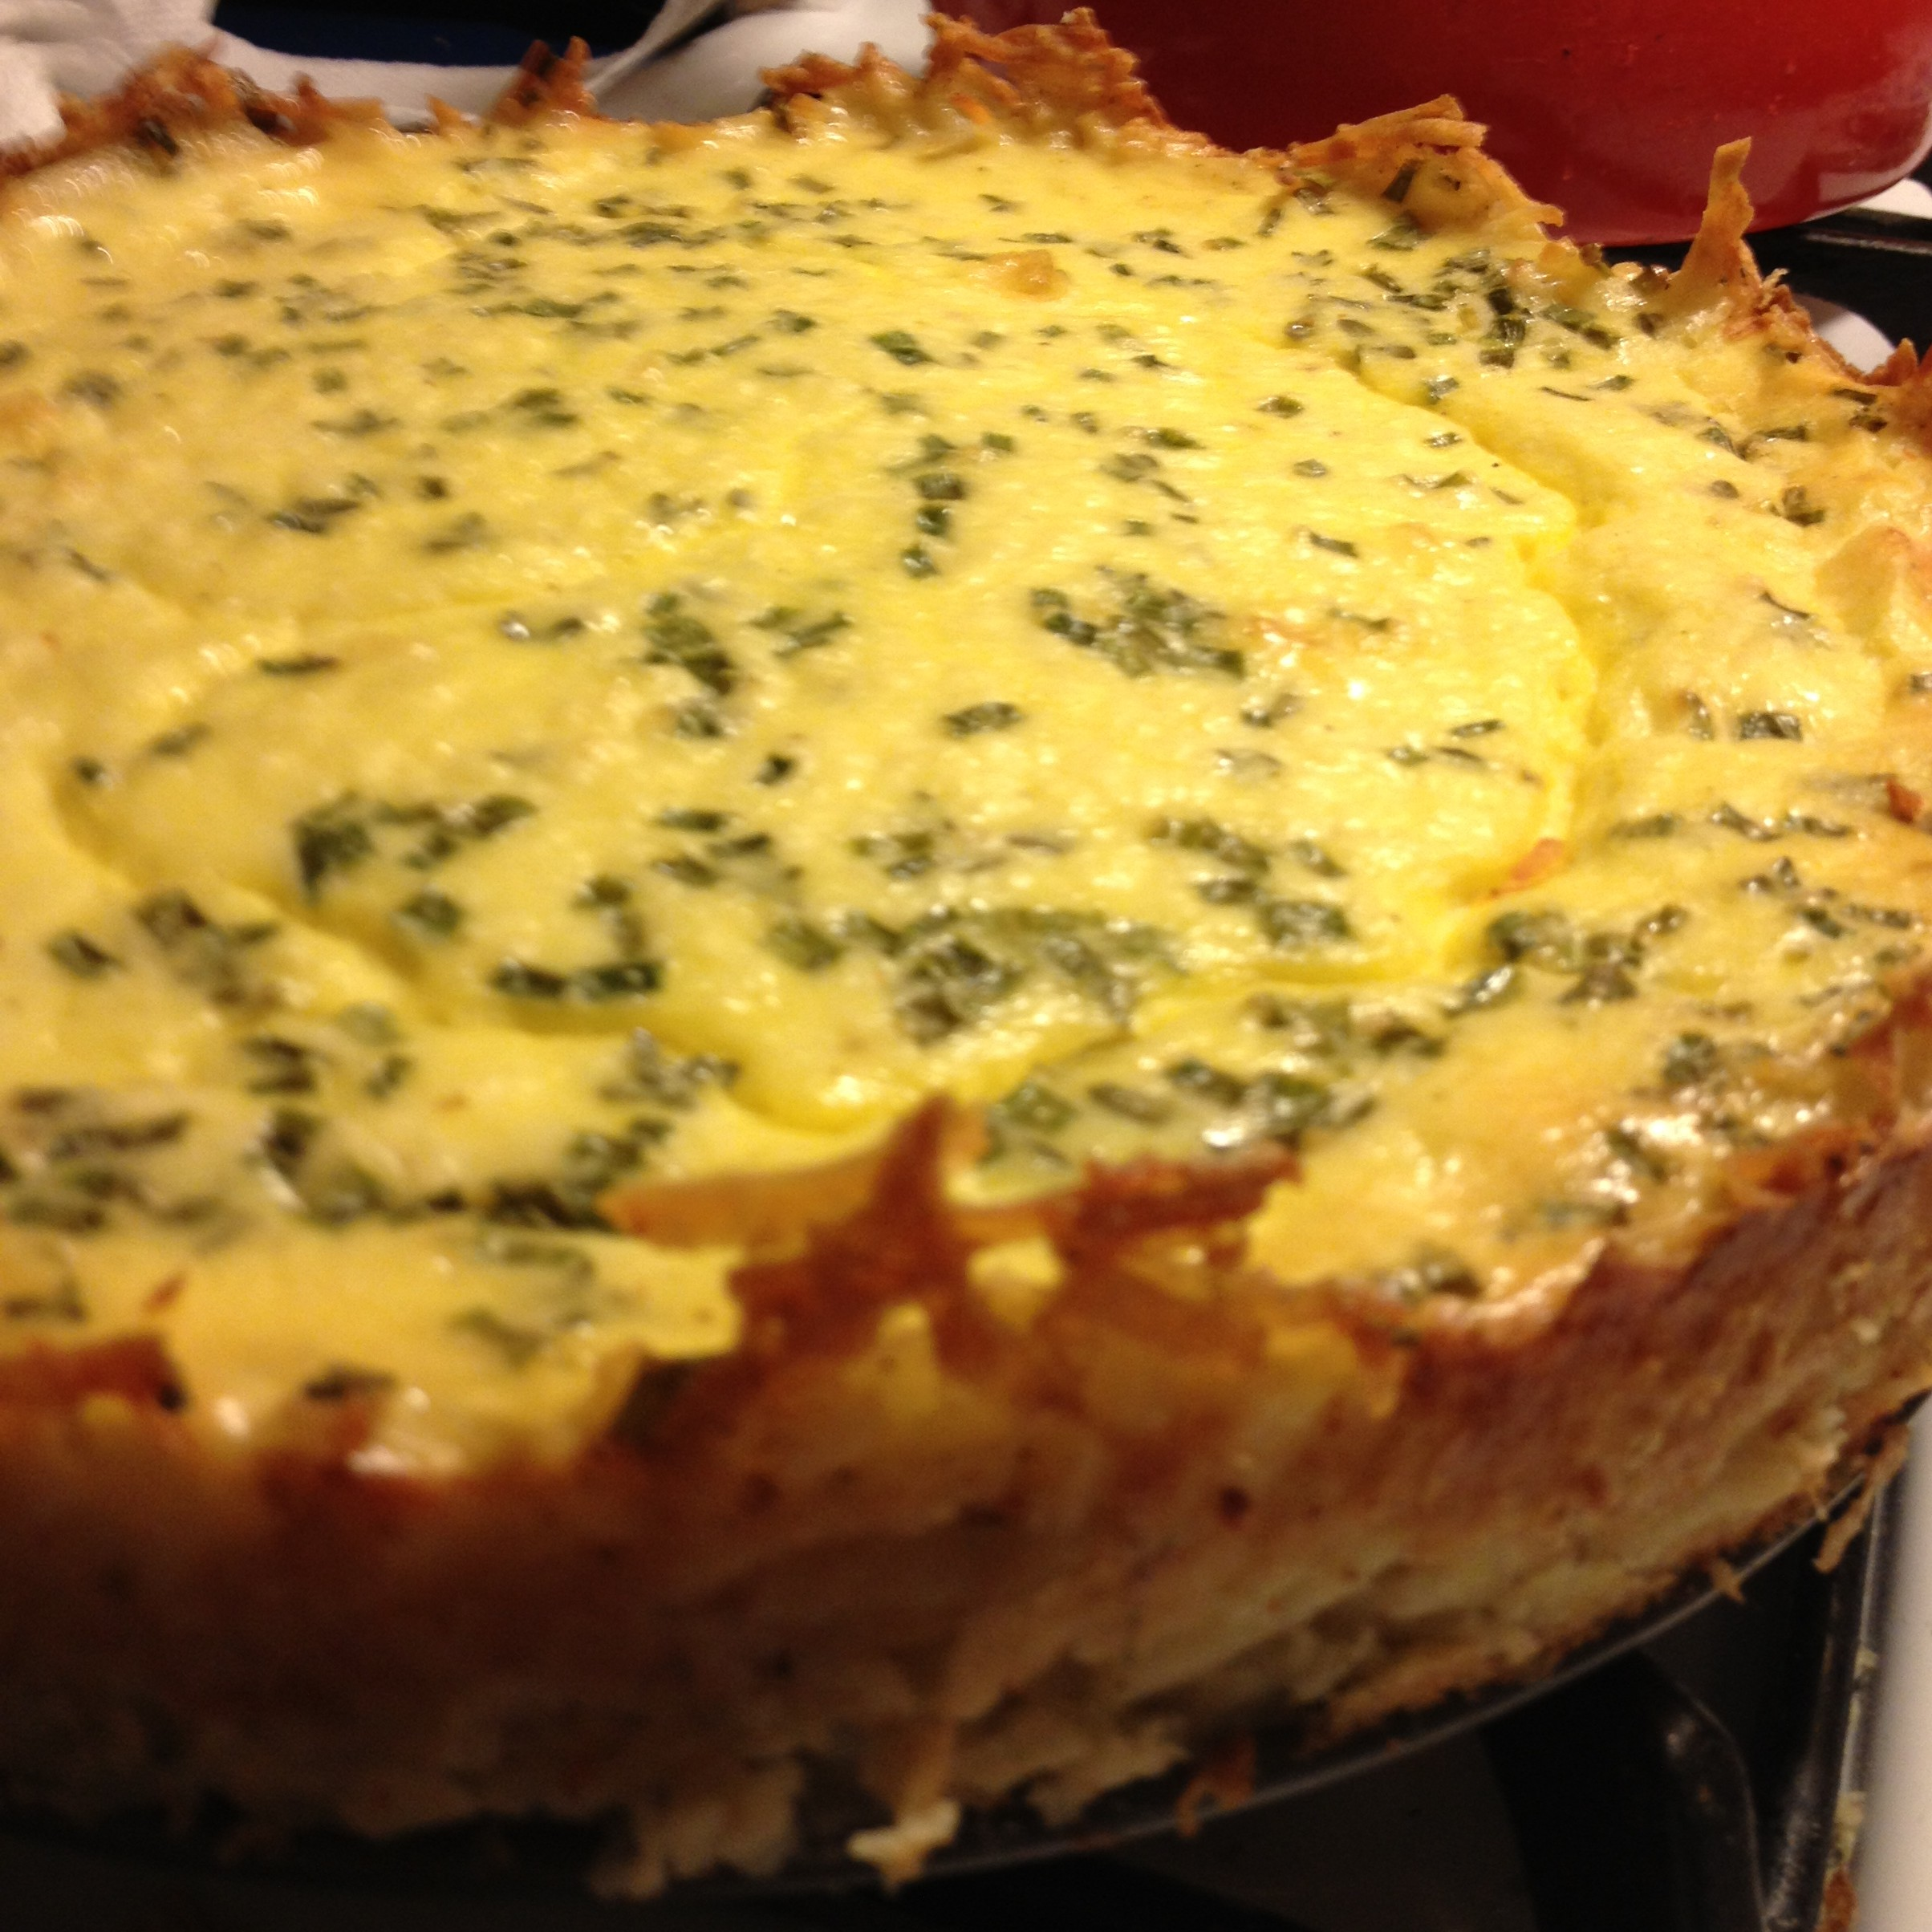 Savory Goat Cheesecake with Potato Crust